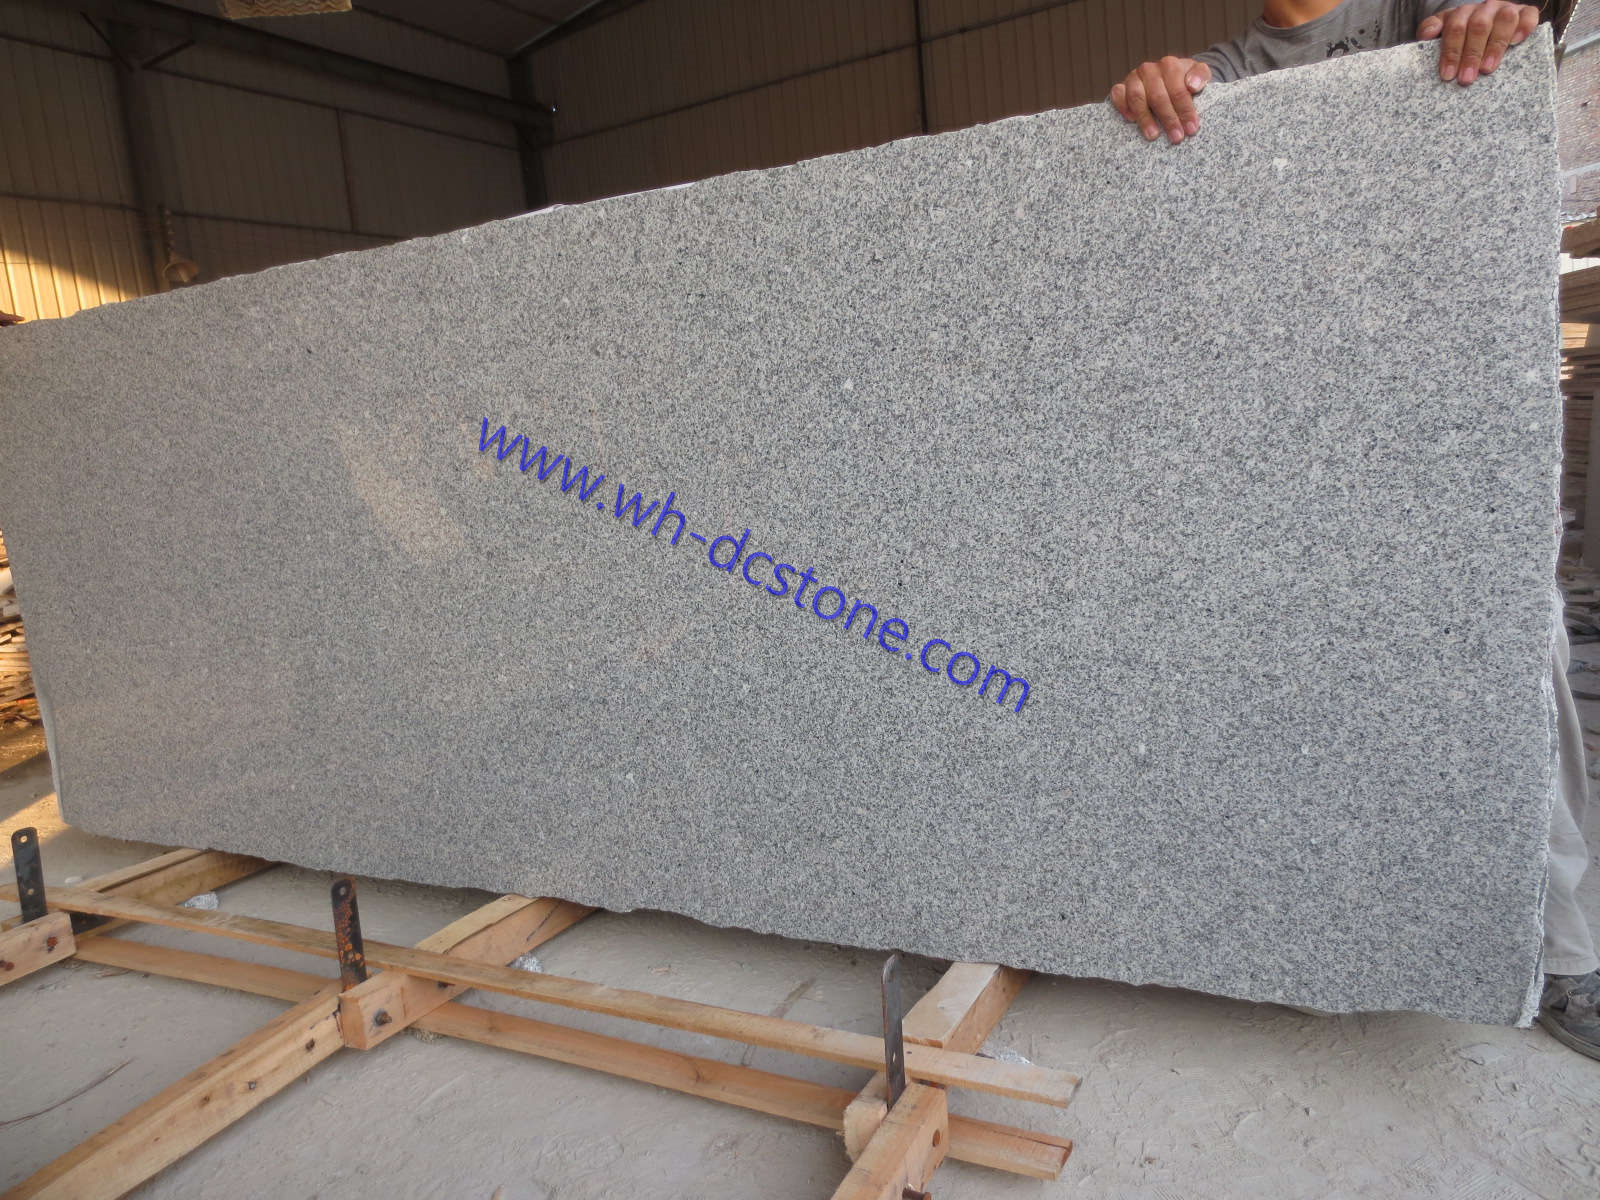 G603 Grey Granite Slabs, Buy G603 Half Slabs or Small Slabs from China